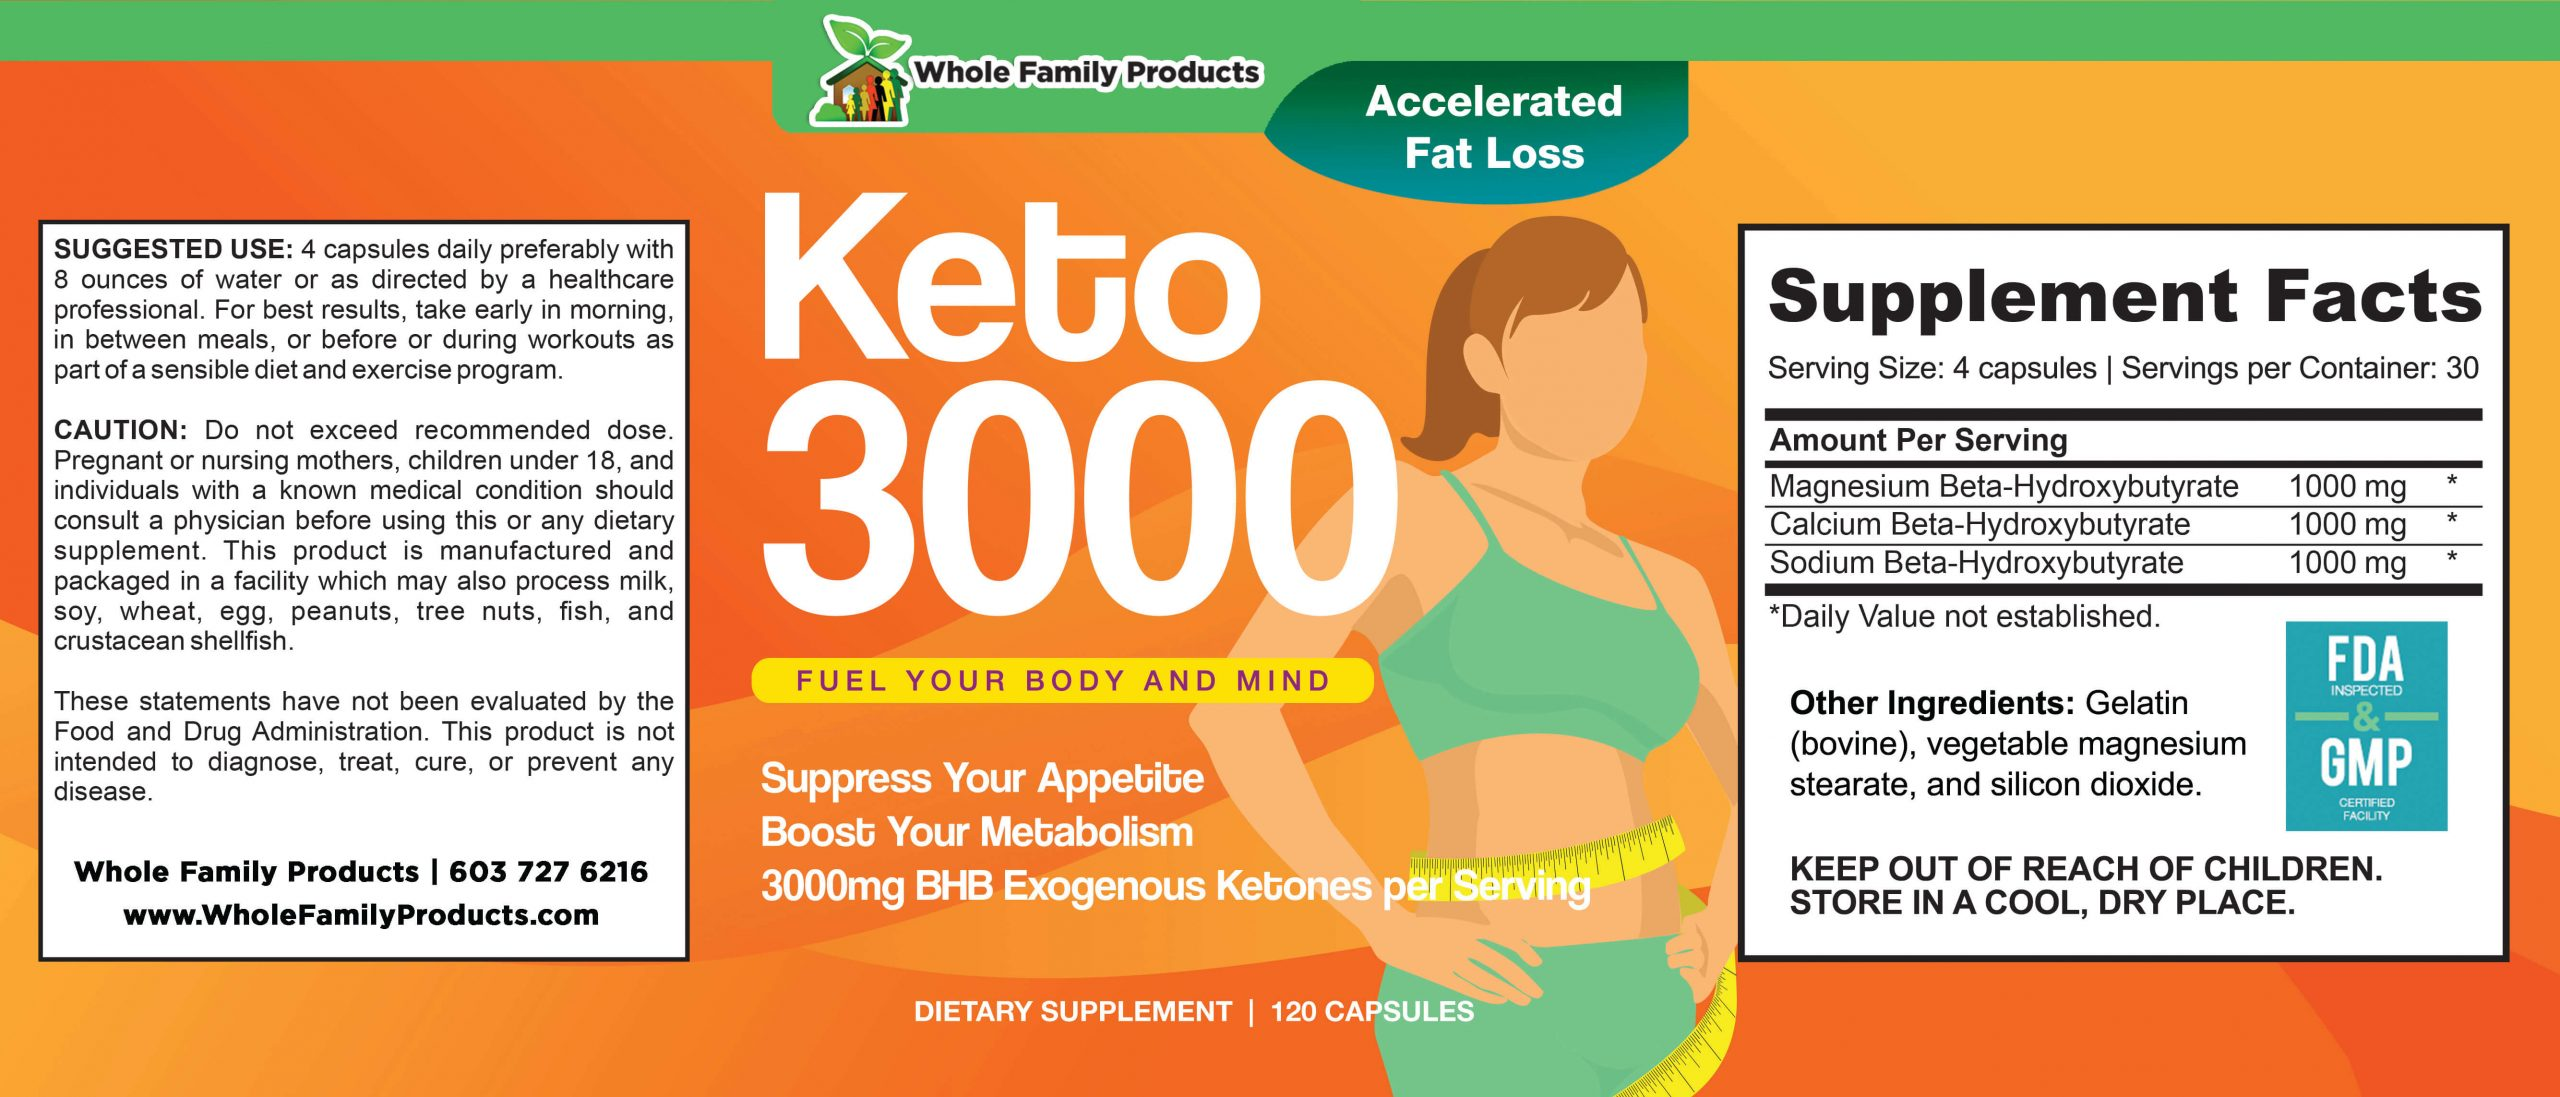 Keto 3000 120 Capsules WFP Product Label